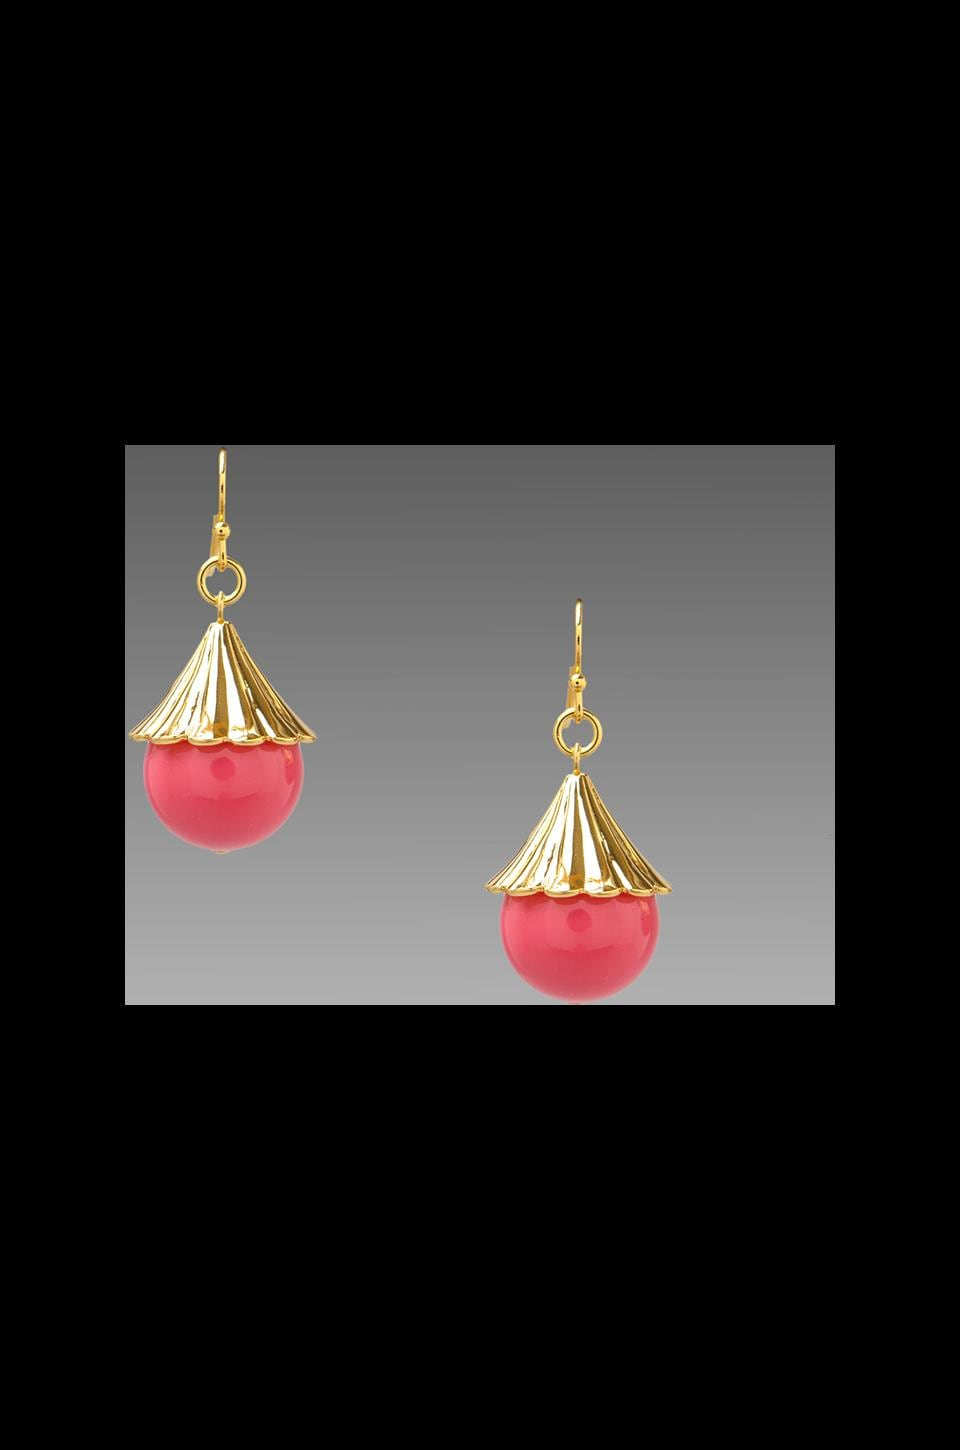 Trina Turk Fluted Cap Drop Earring in Pink